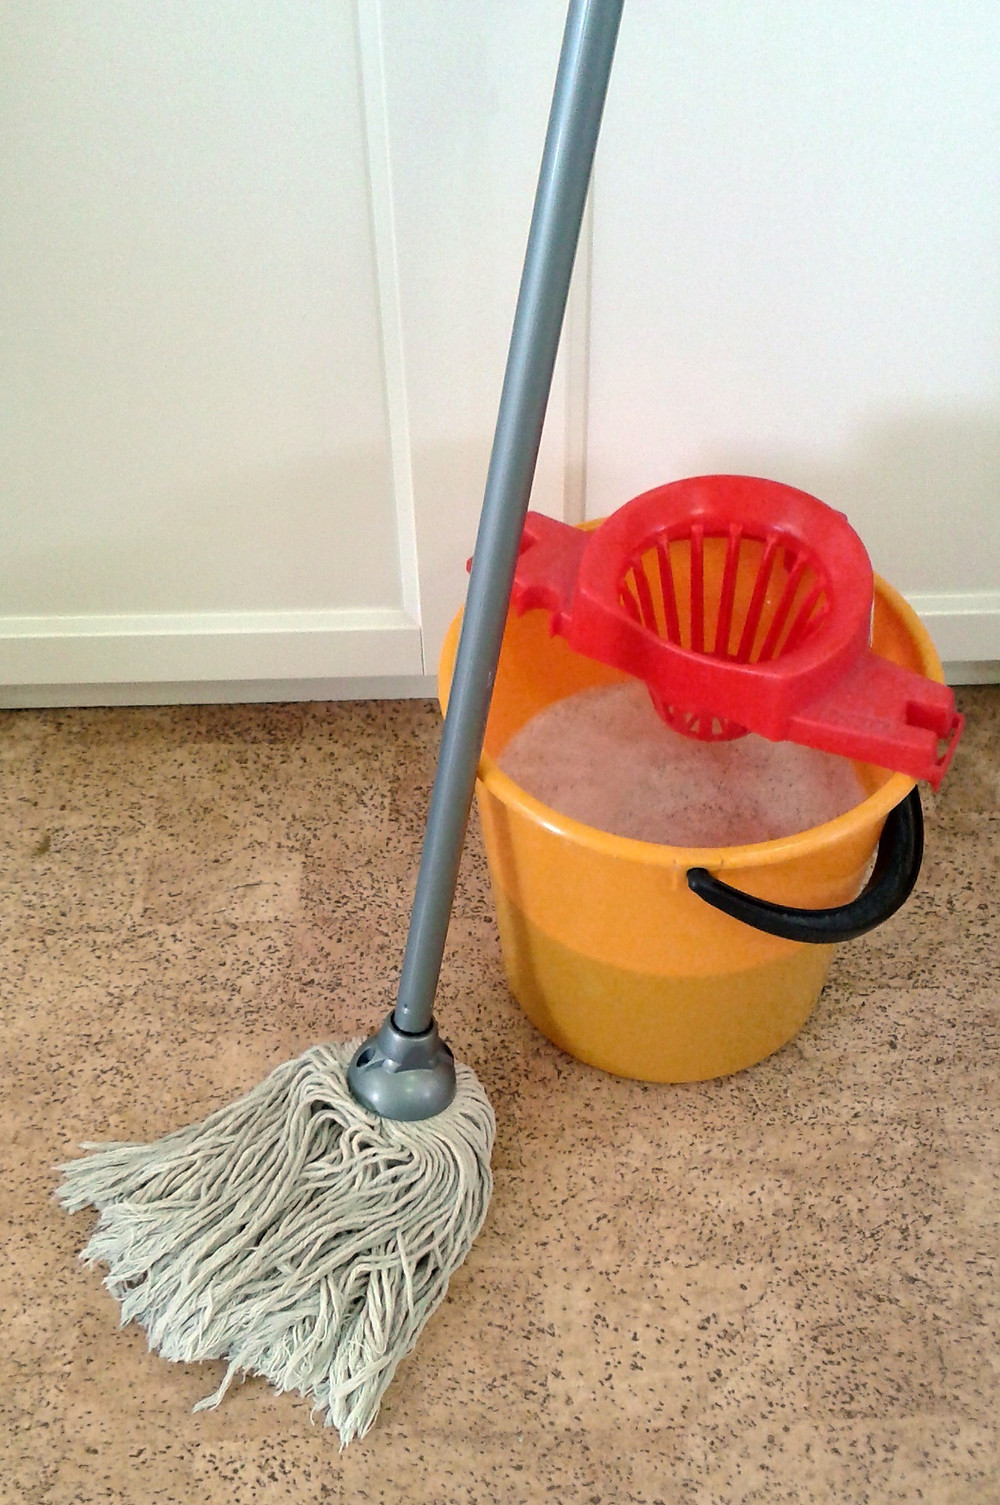 mop and bucket of soapy water